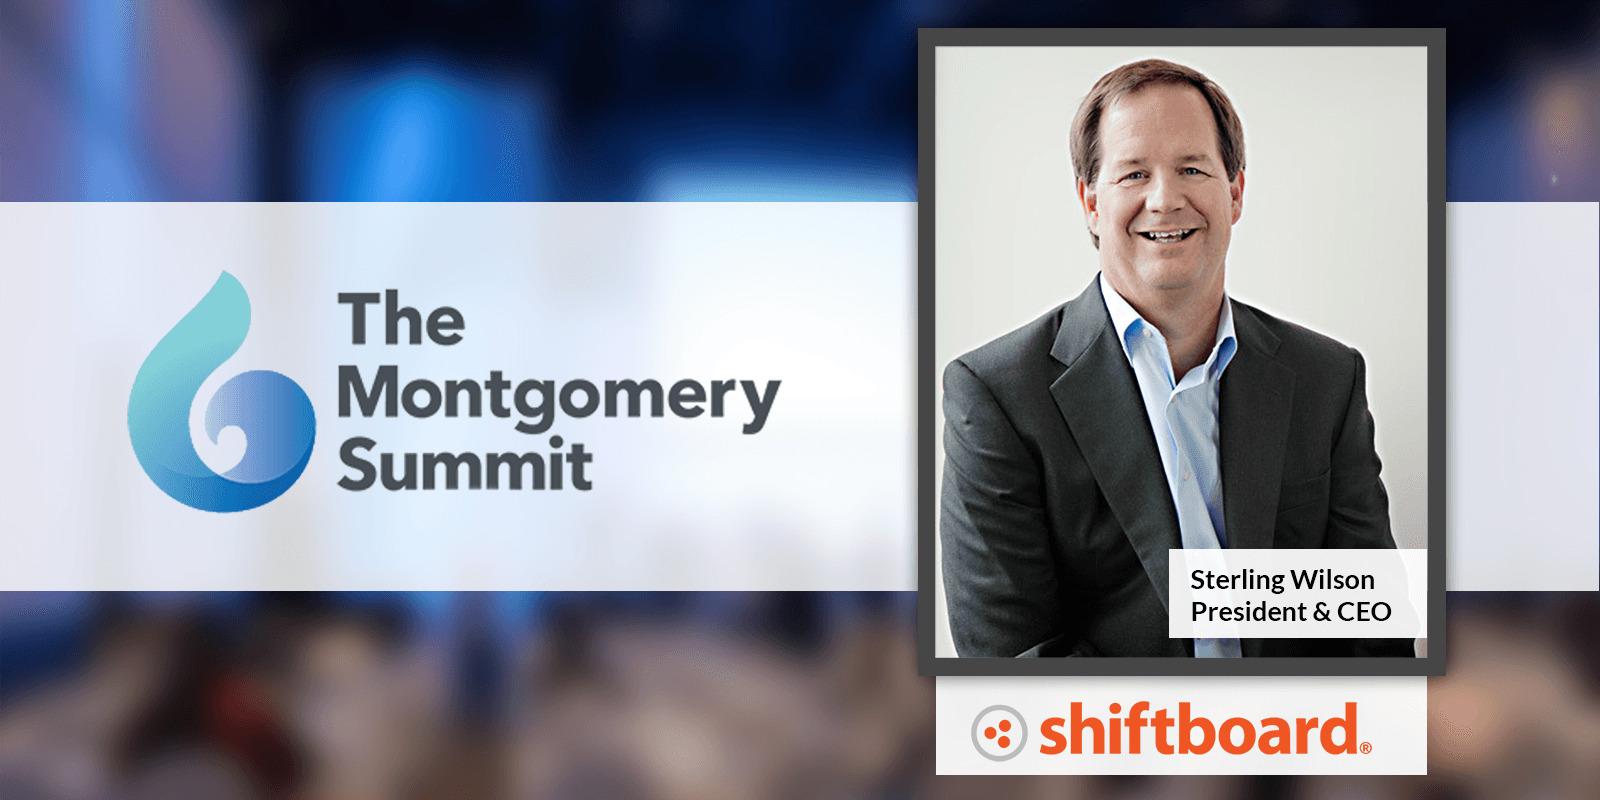 Shiftboard to Present at The Montgomery Summit